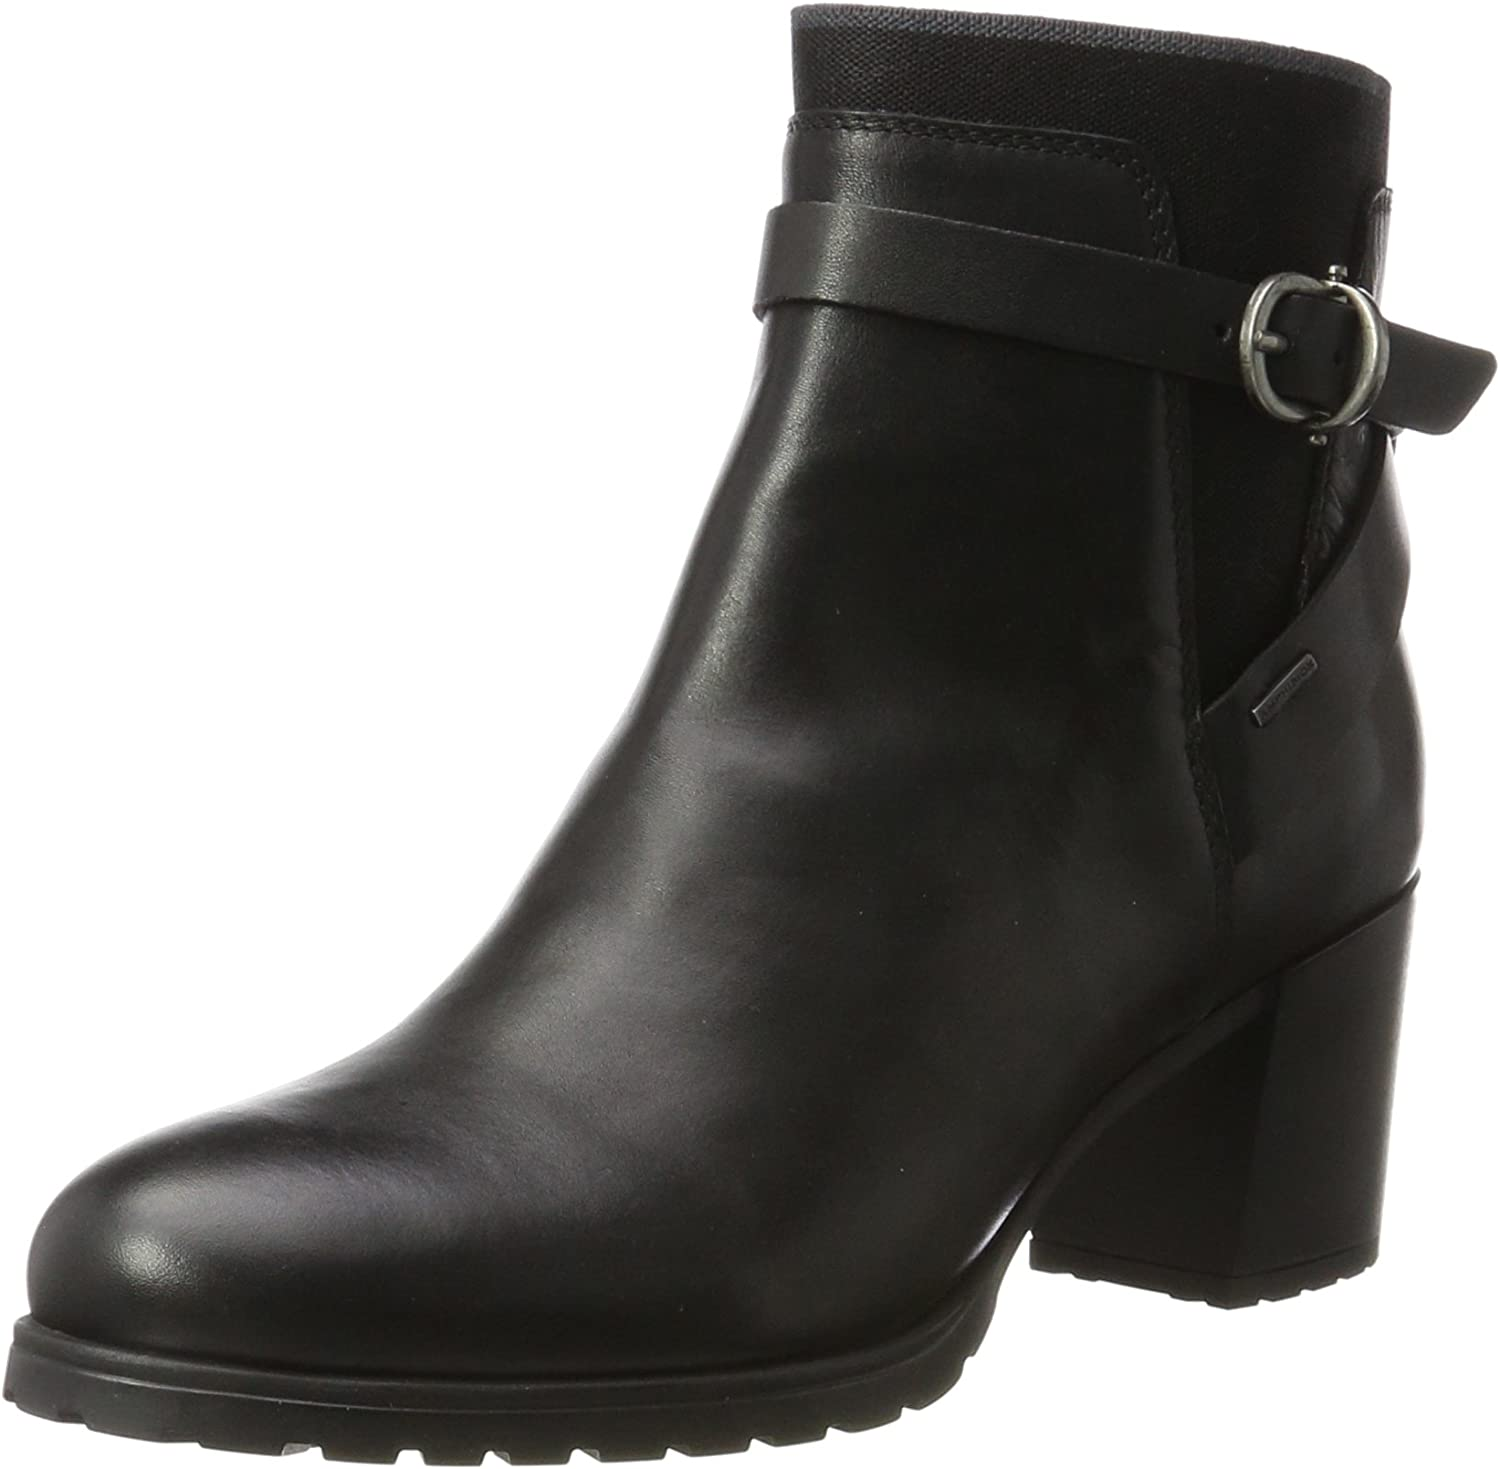 Clínica Similar tonto  Geox Women's D New Lise Np ABX a Boots: Amazon.co.uk: Shoes & Bags